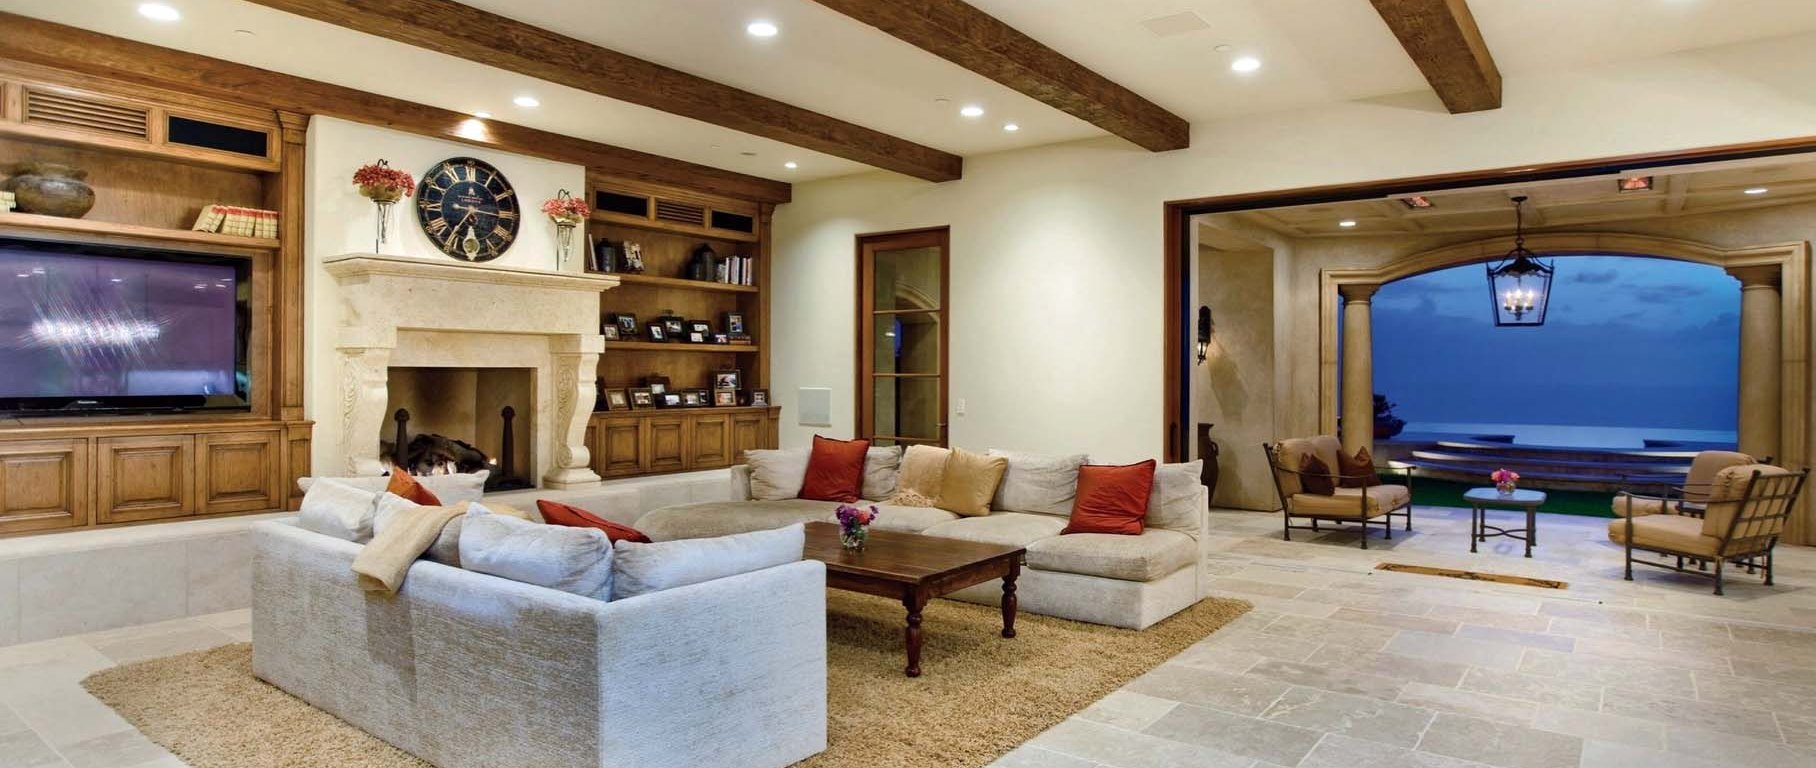 Mediterranean style home reclaimed rustic old natural stone limestone living room hand carved fireplace mantel flooring canada ca Toronto BC